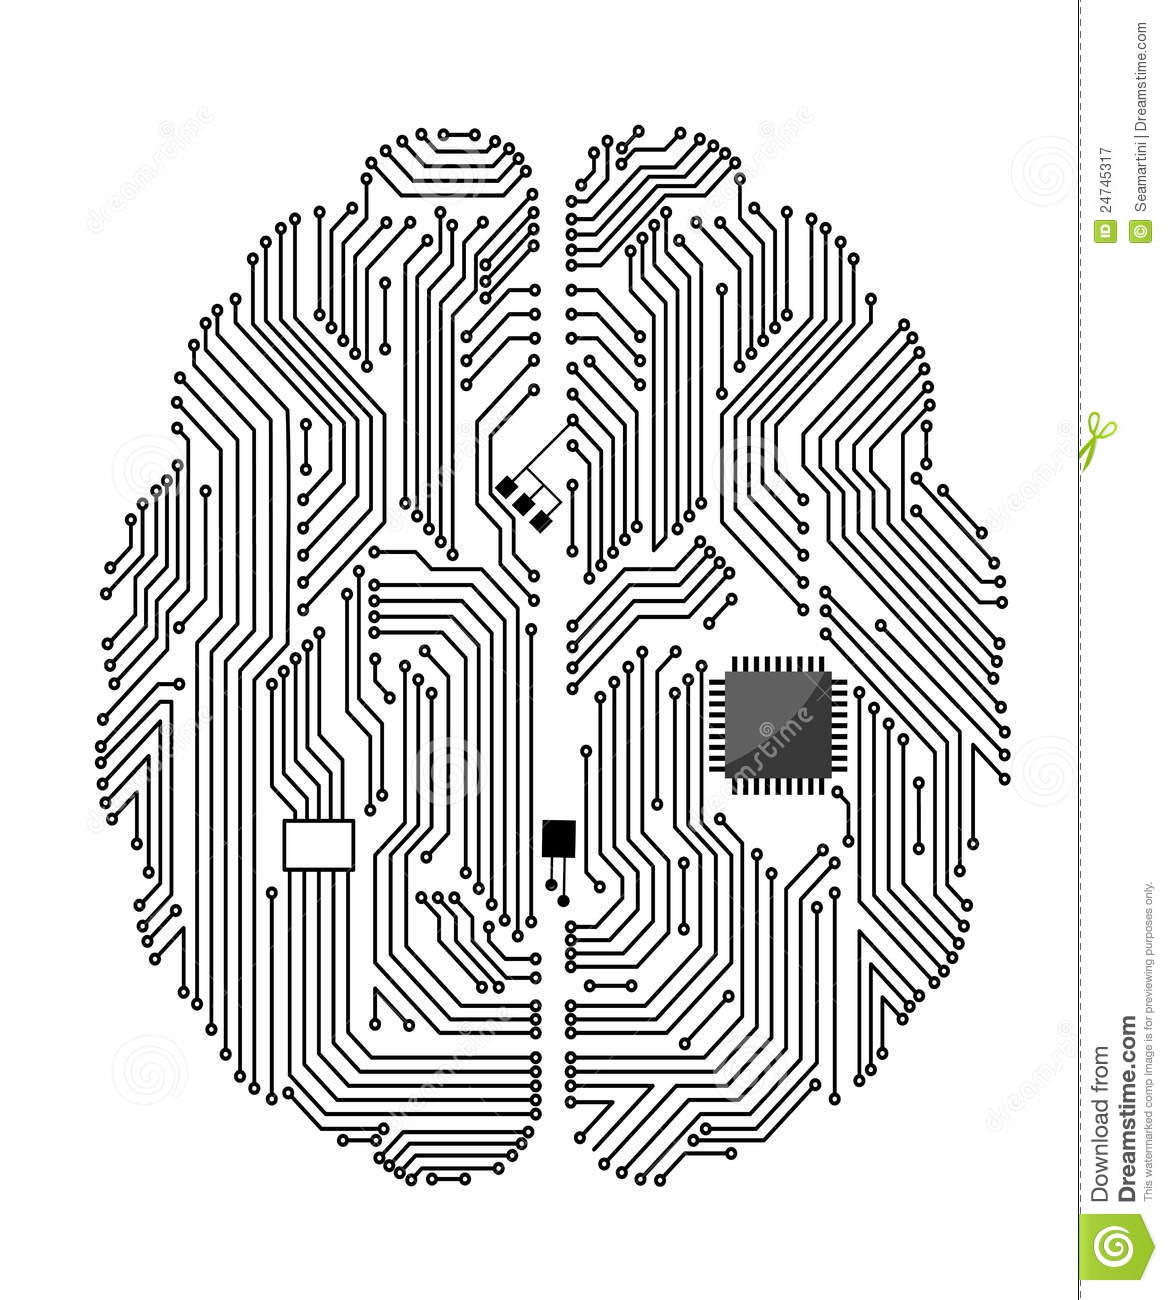 Royalty Free Stock Photography Motherboard Brain Image24745317